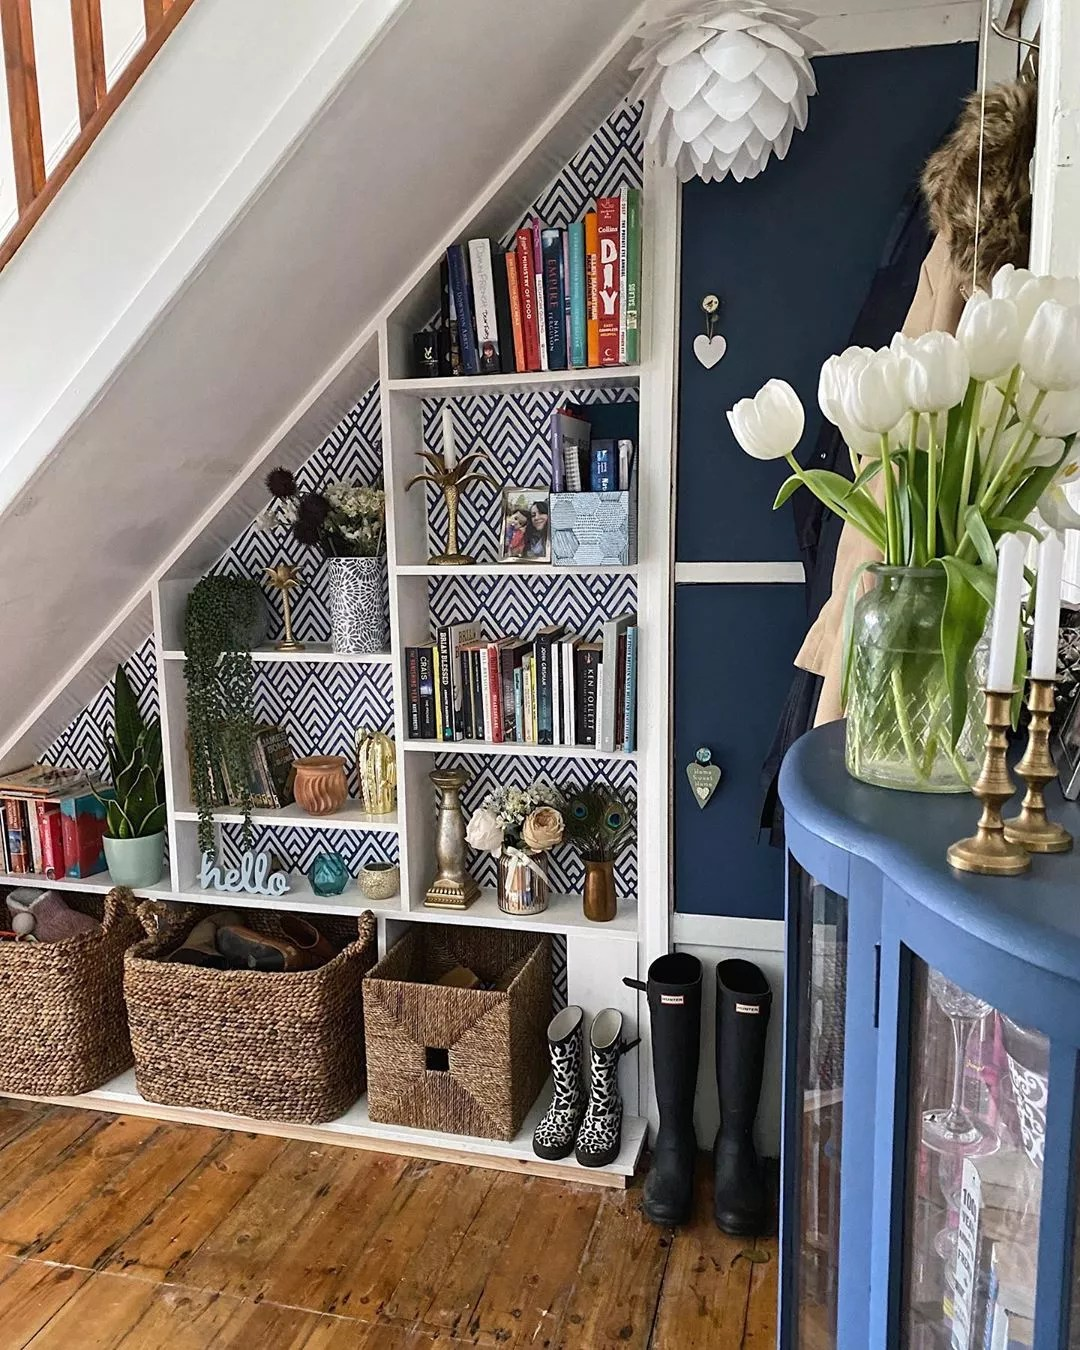 under stair storage space with shelves and woven baskets photo by Instagram user @melaniejadedesign